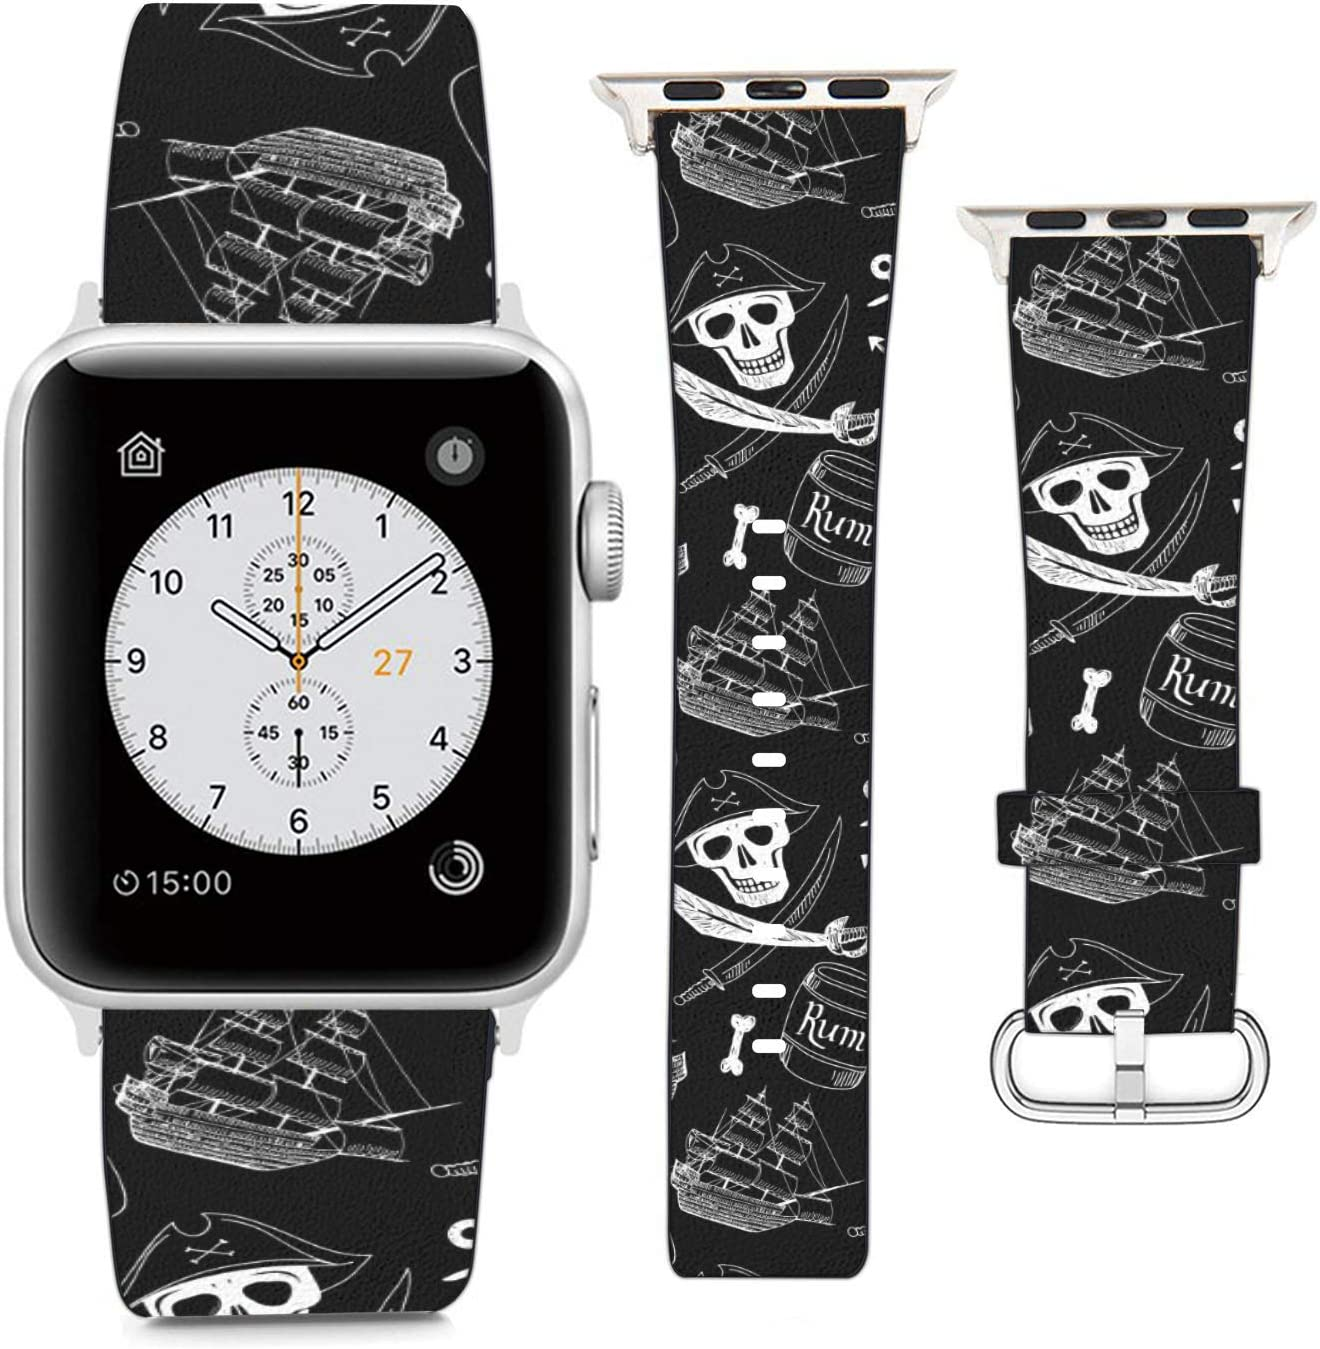 Compatible with Apple Watch Wristband 38mm 40mm, (Pirate Design Elements in Vintage Style) PU Leather Band Replacement Strap for iWatch Series 5 4 3 2 1